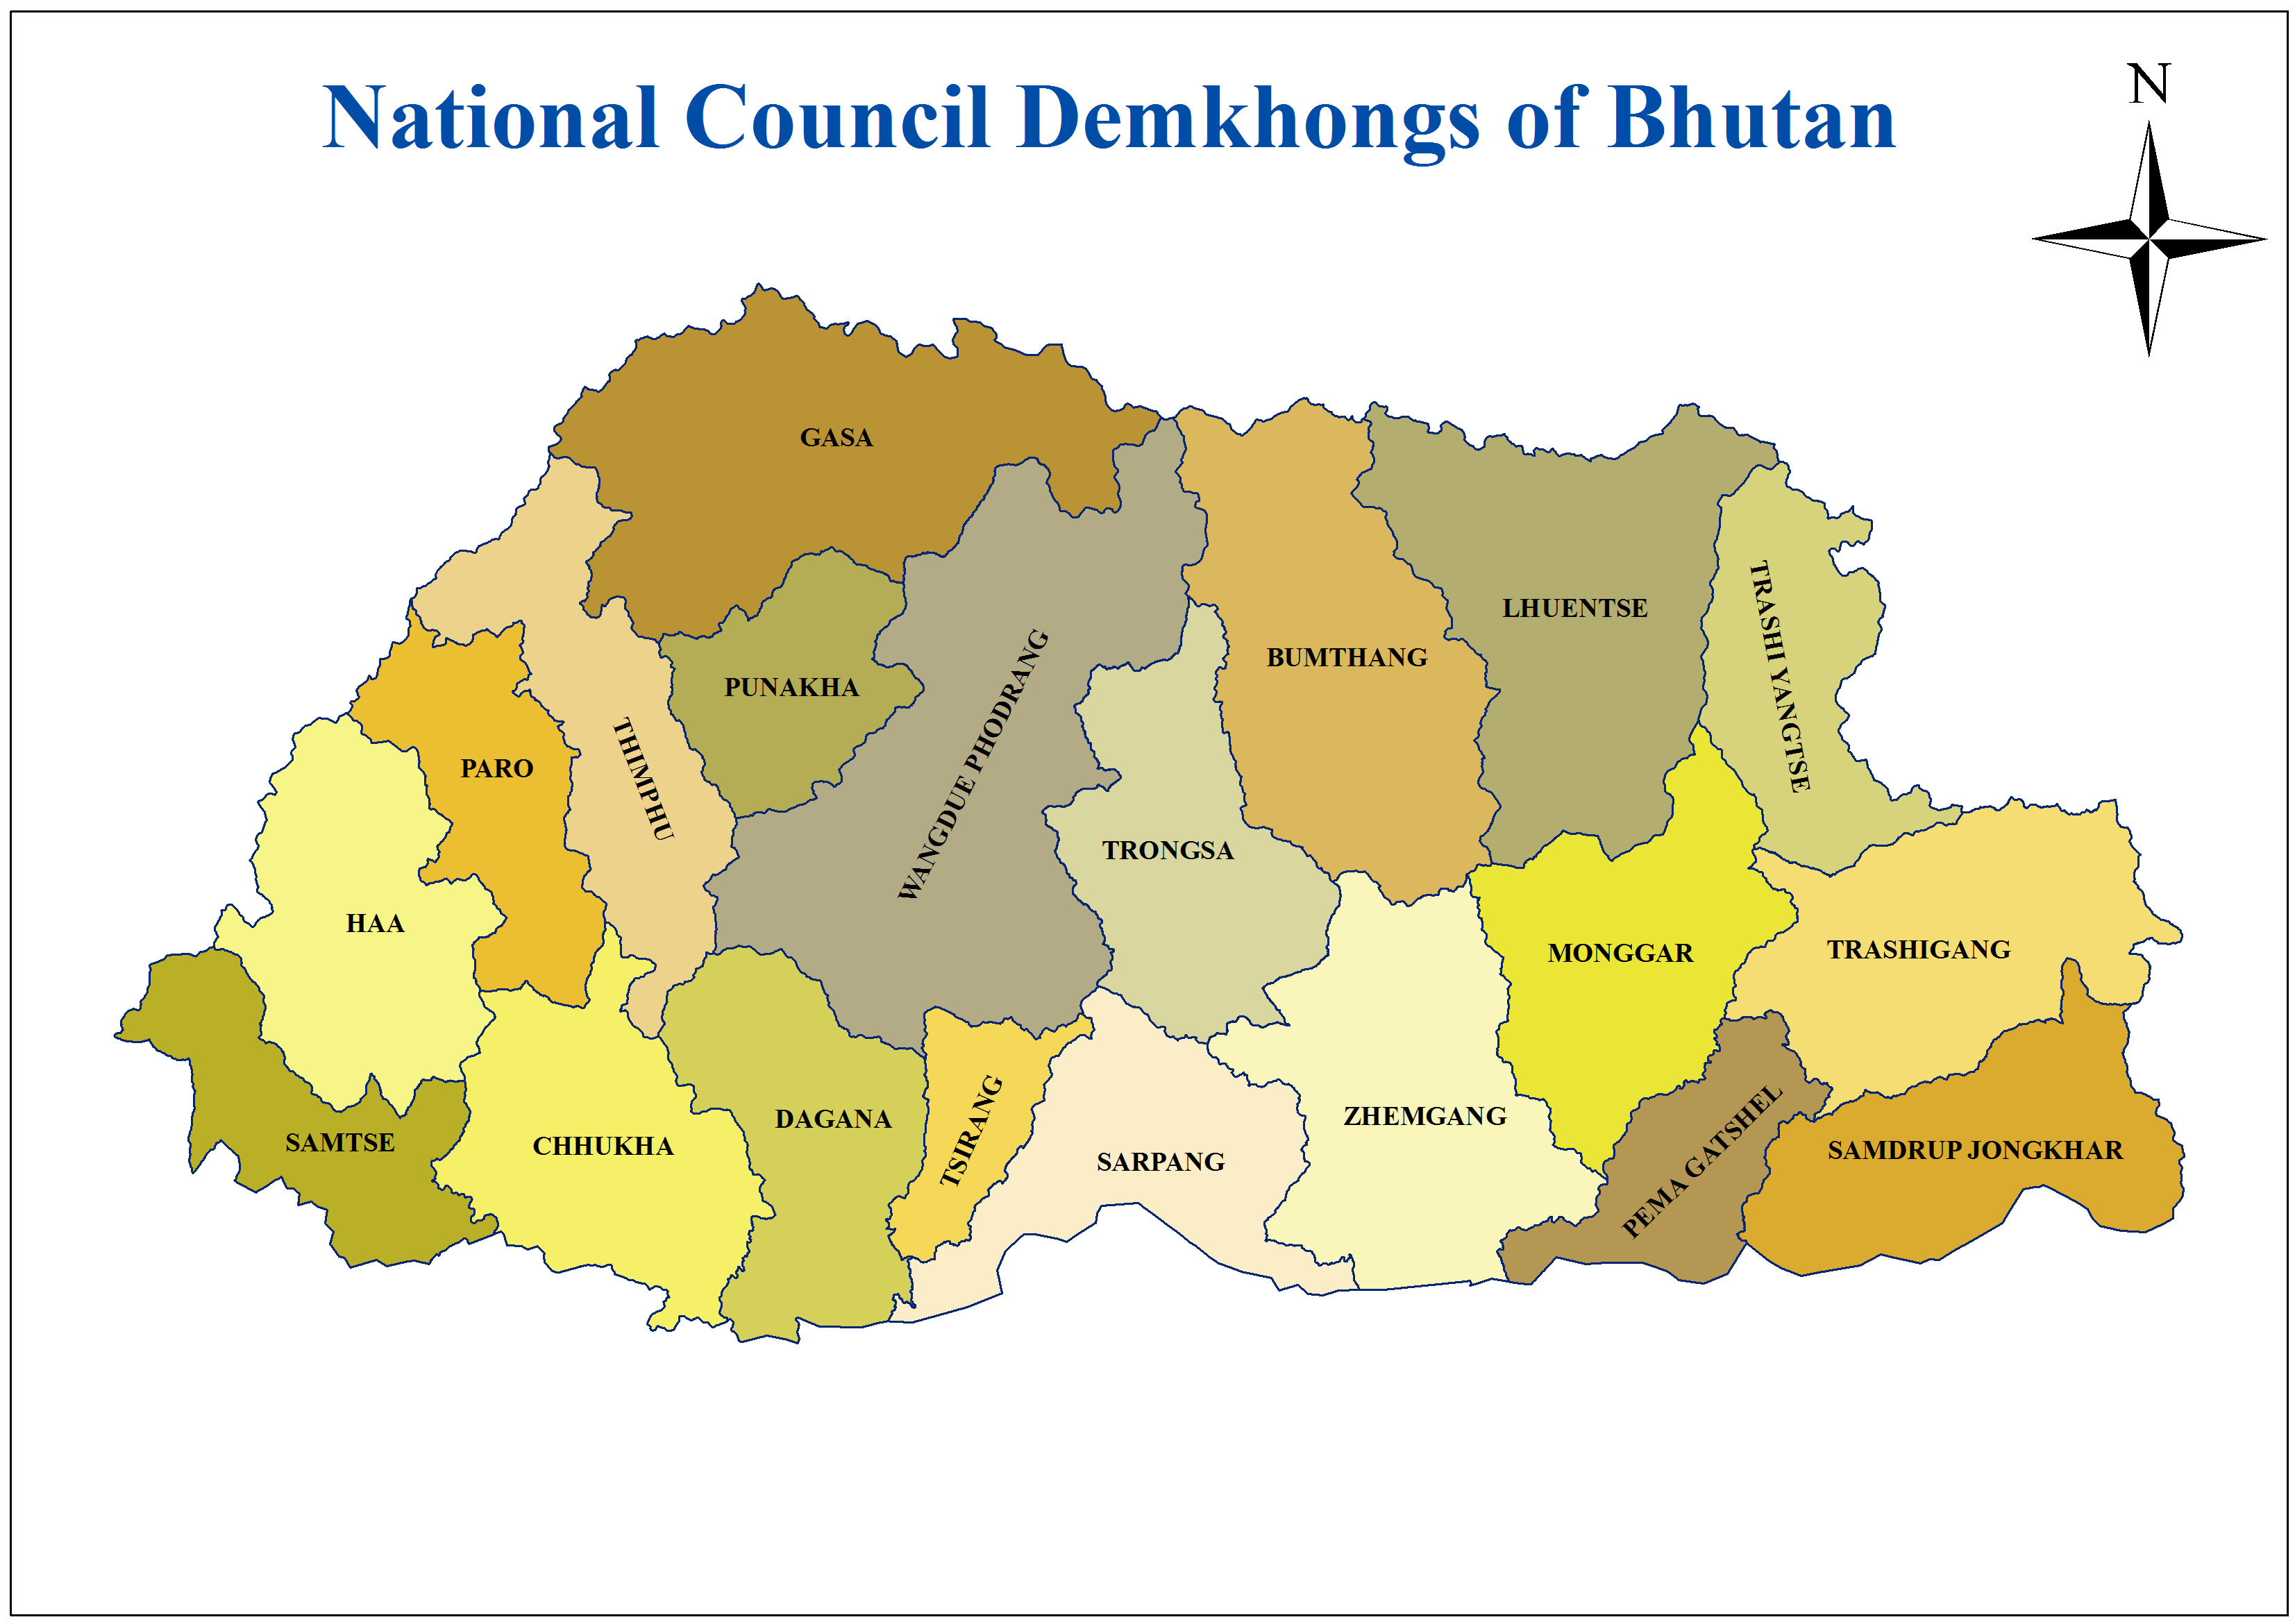 NationalCouncilBhutan